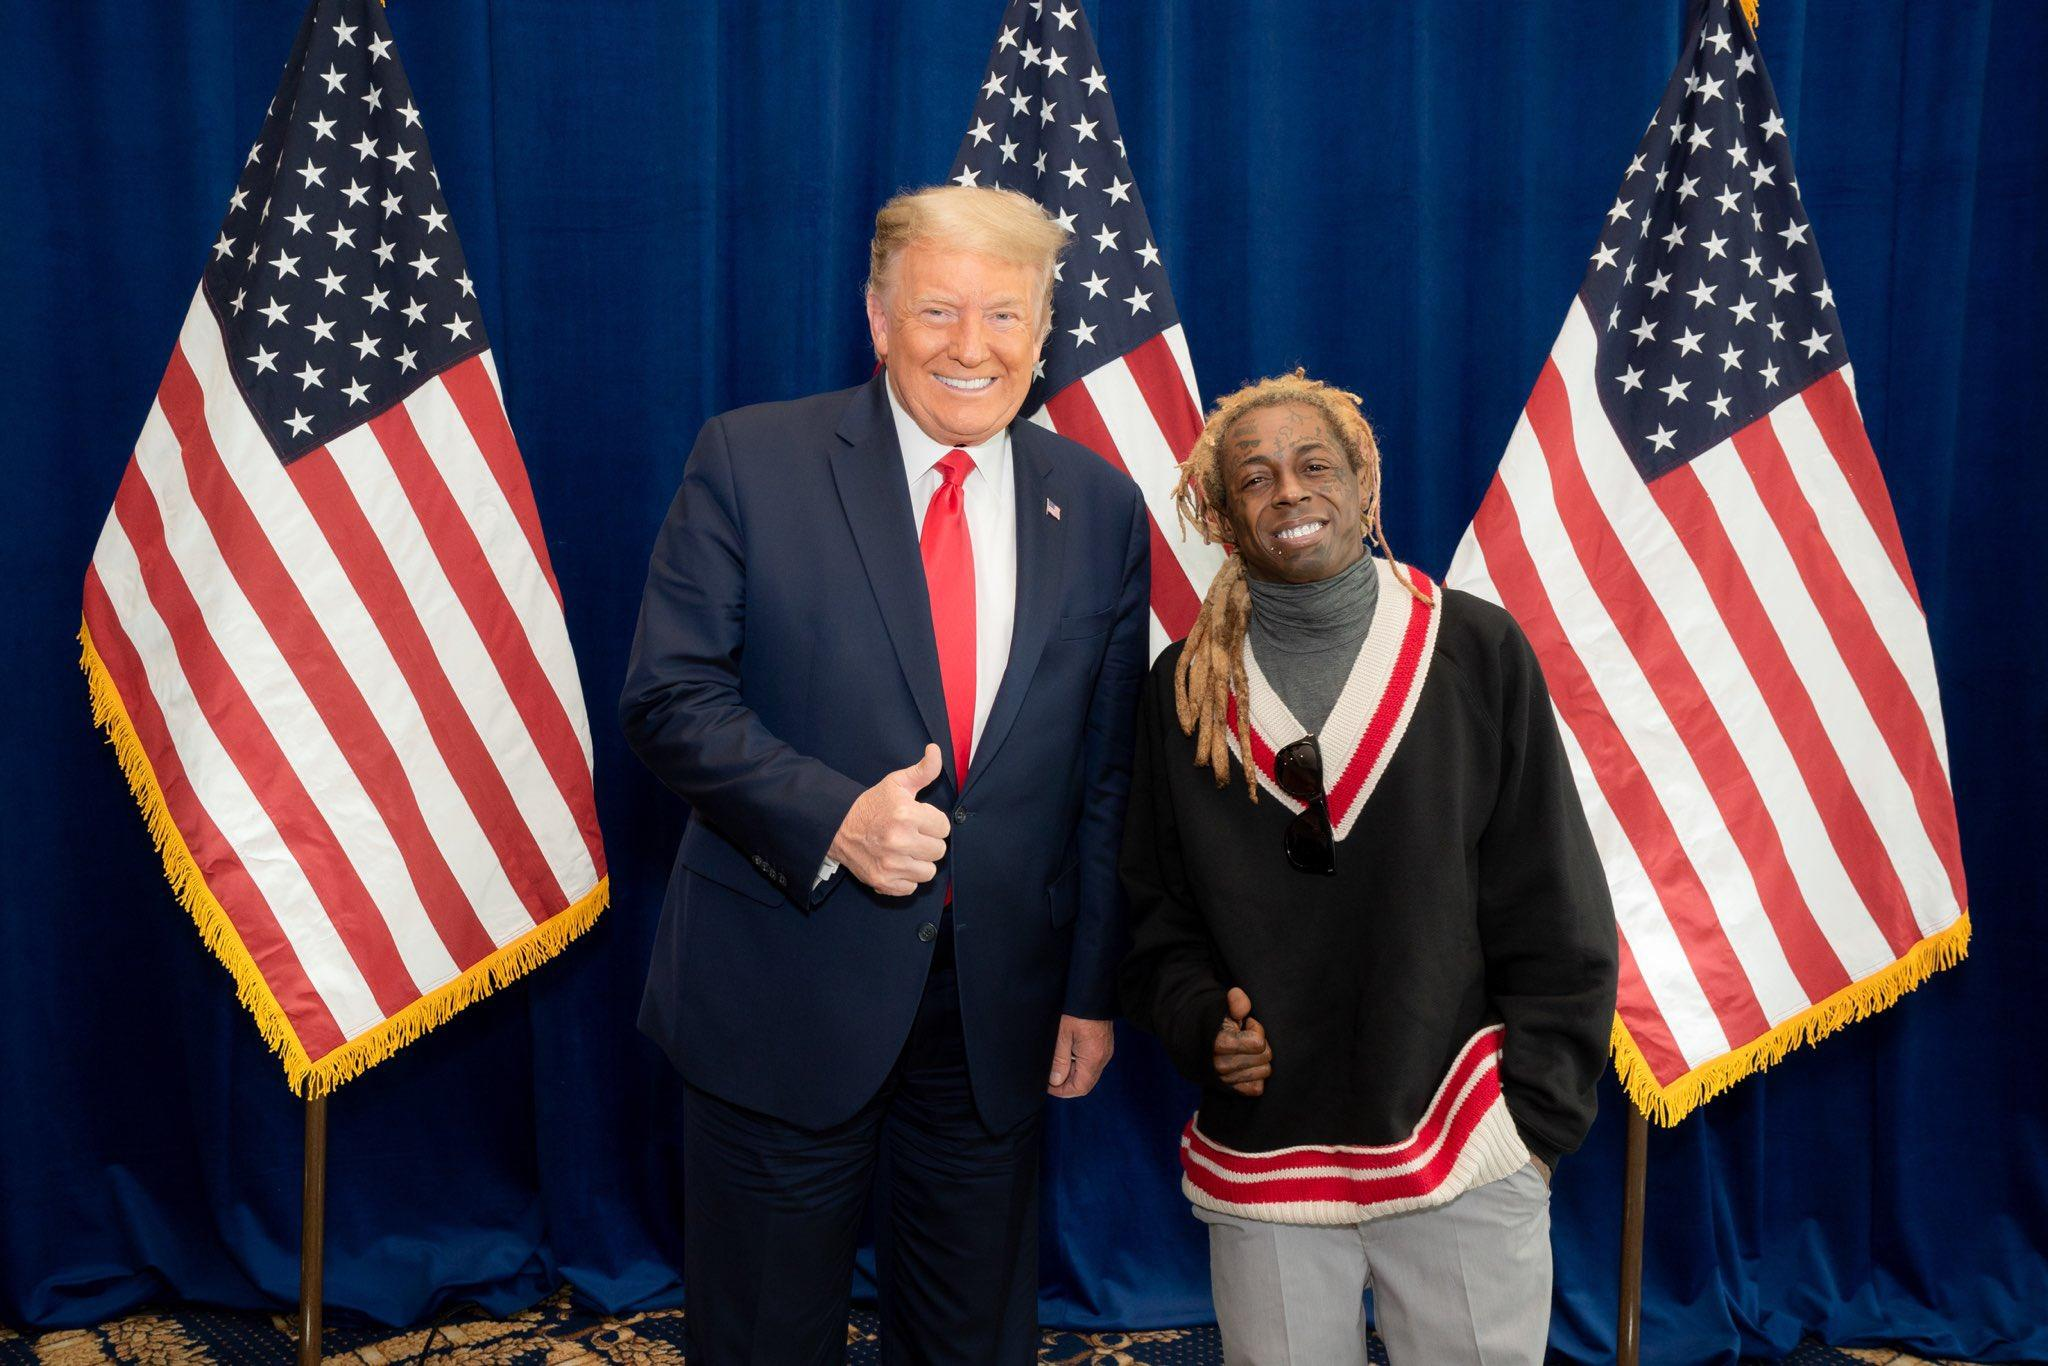 Lil Wayne becomes latest rap star to align with Donald Trump